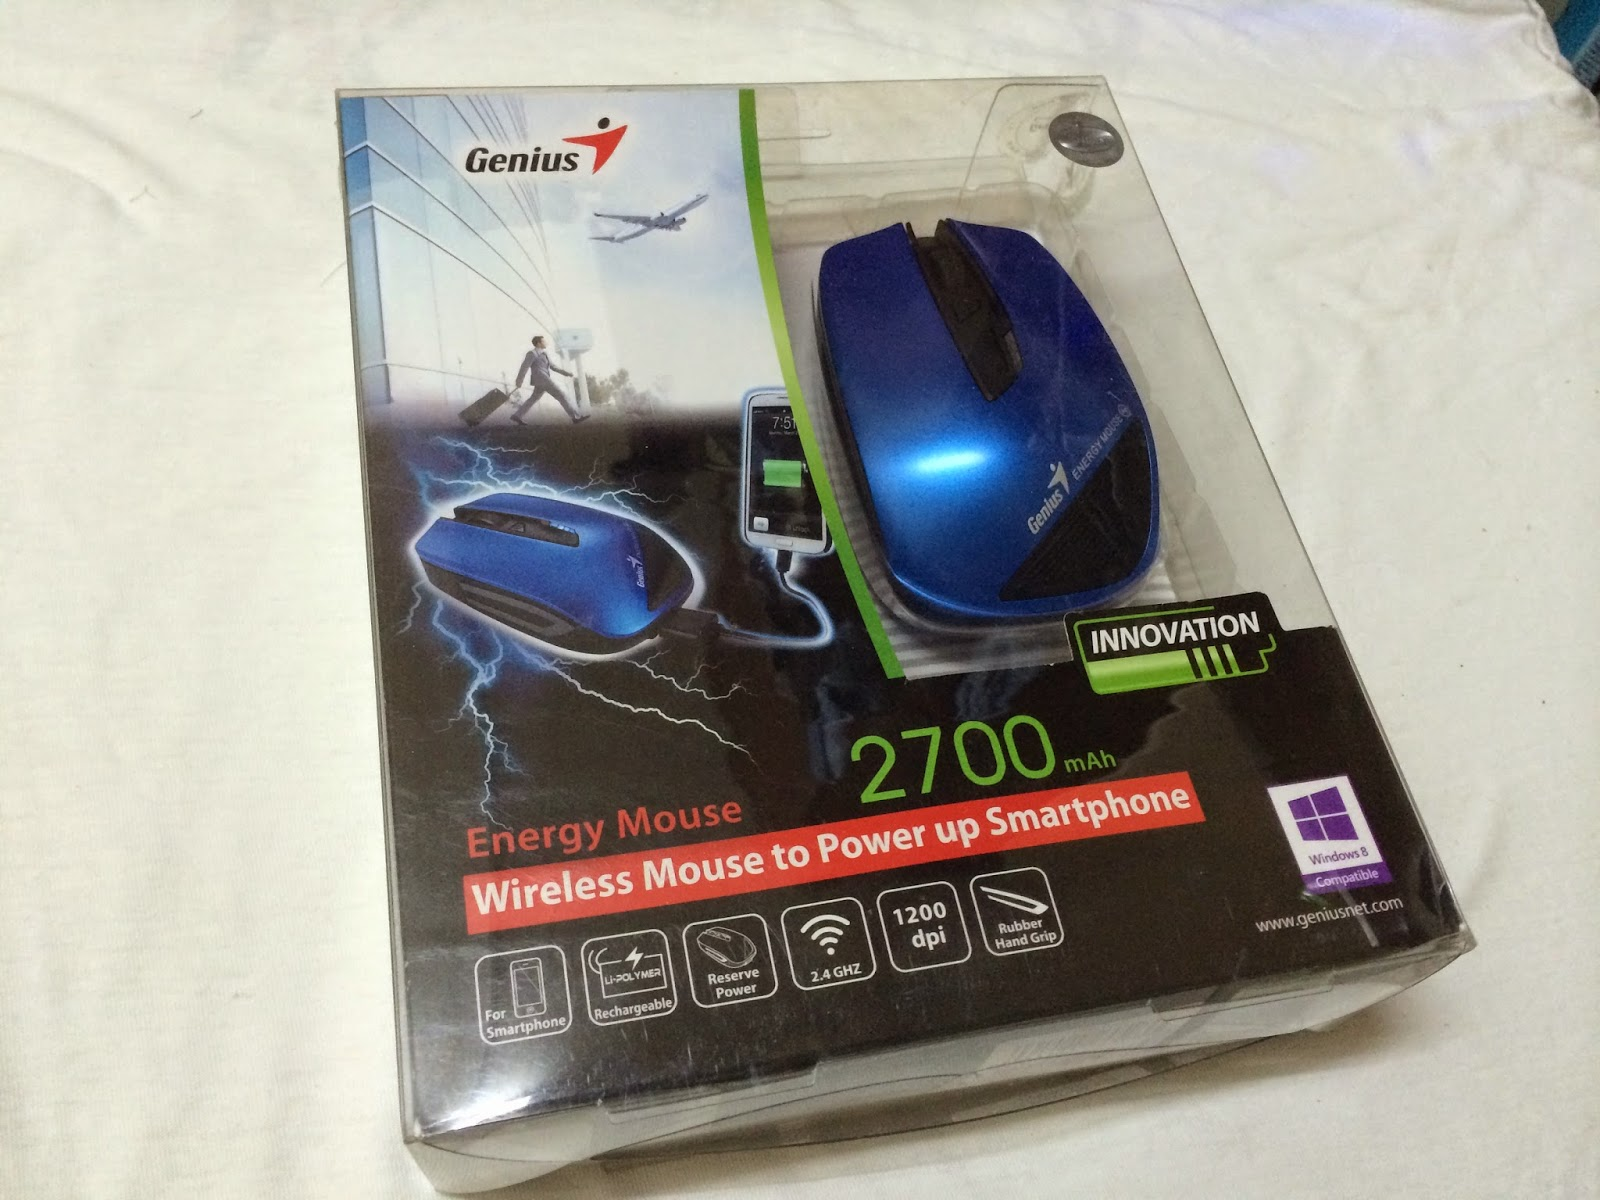 Unboxing & Review: Genius Energy Mouse 24